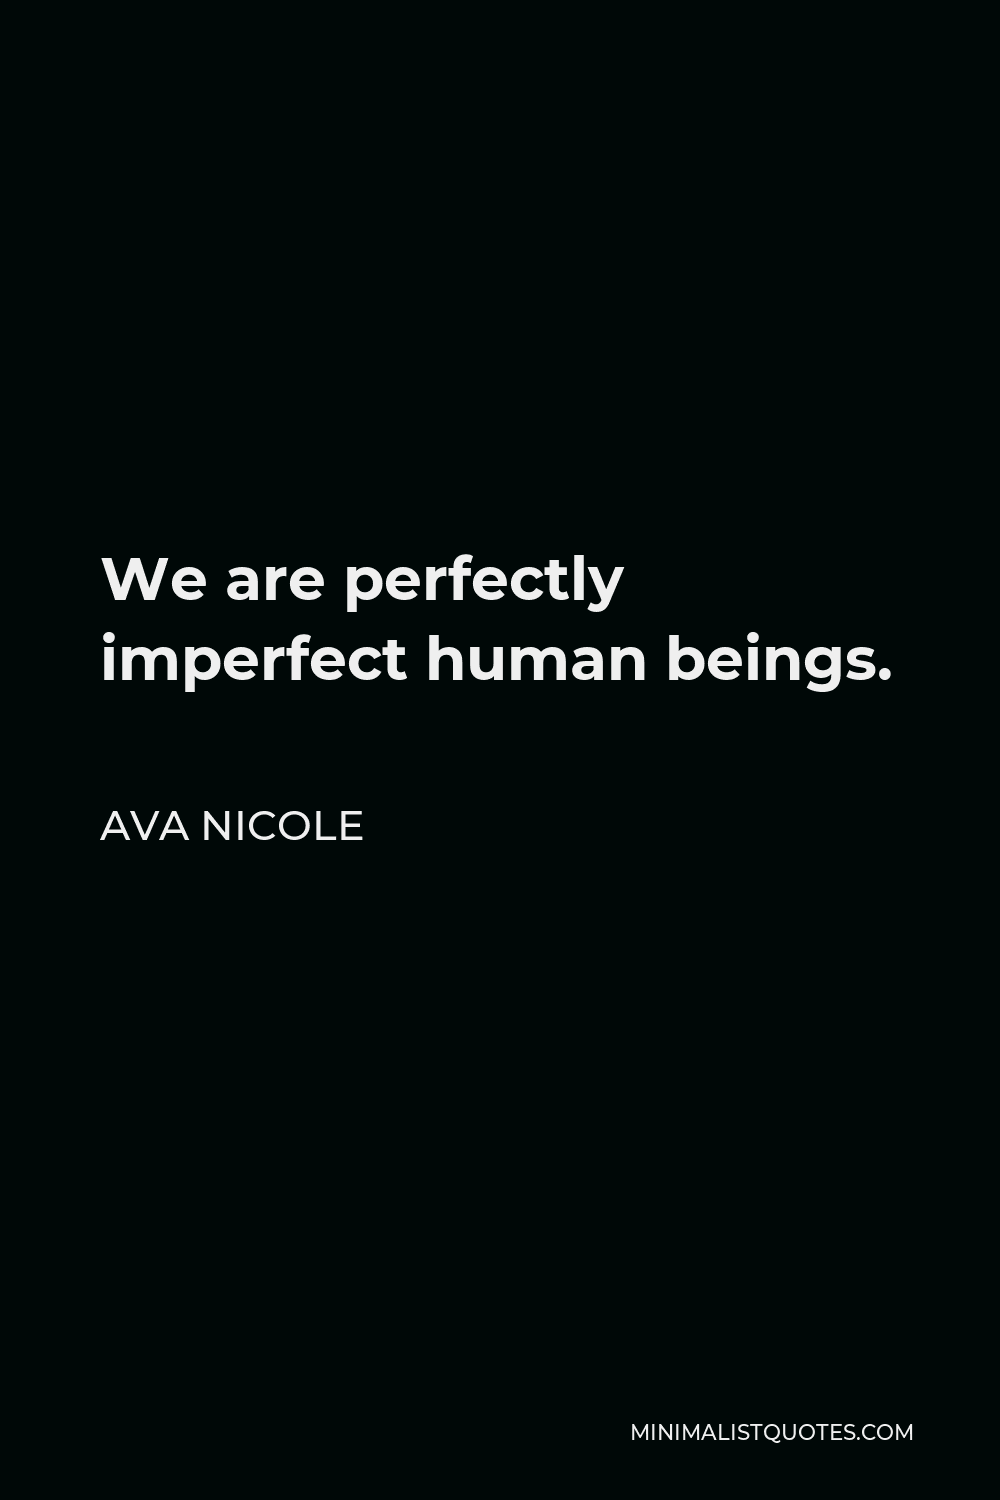 Ava Nicole Quote - We are perfectly imperfect human beings.